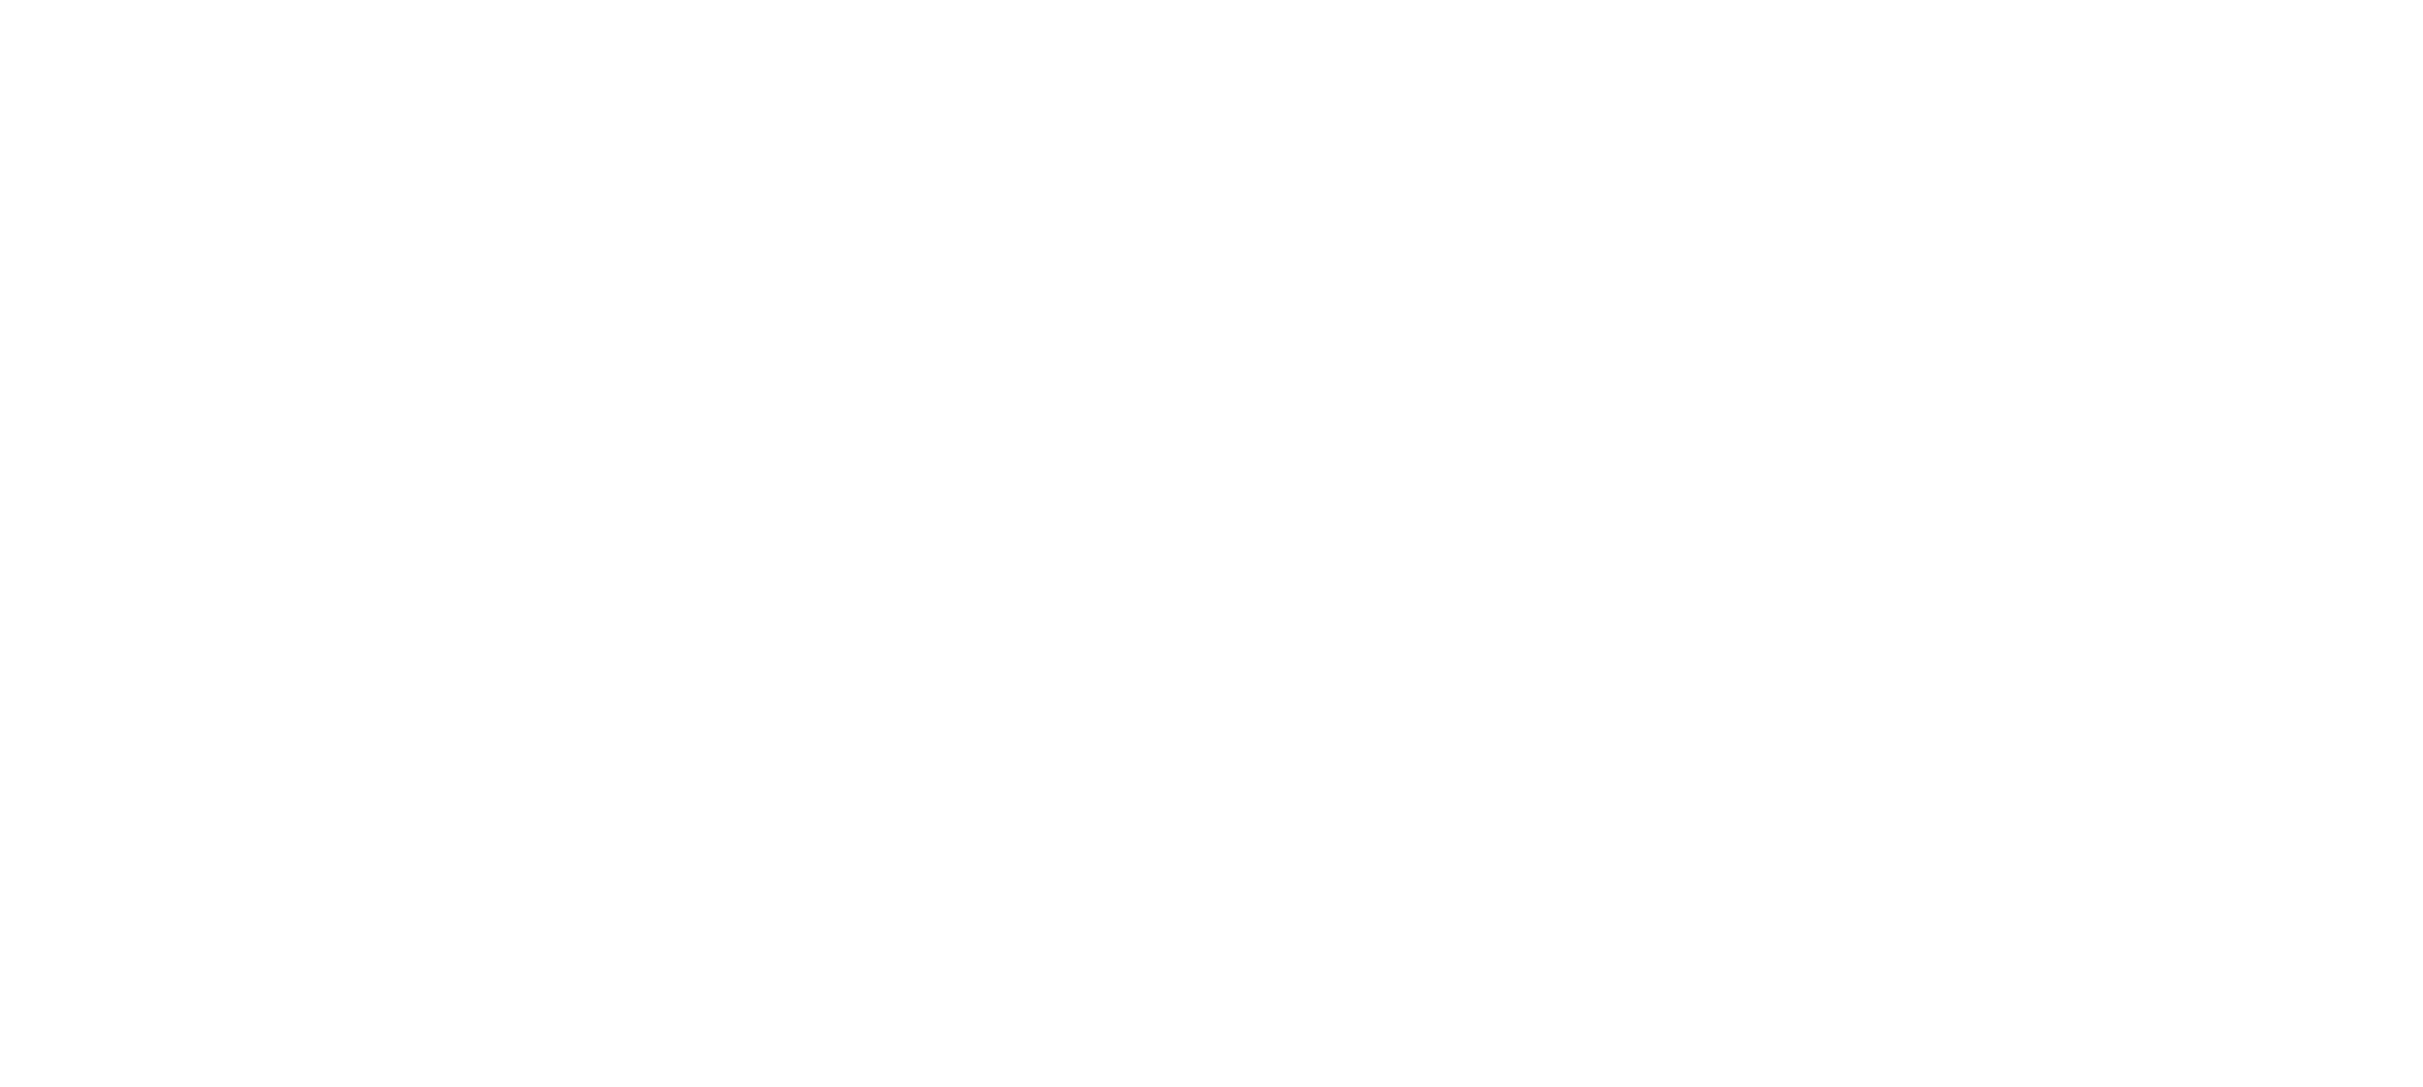 Annie Hoch-South white icon with cursive initials flowing to print font